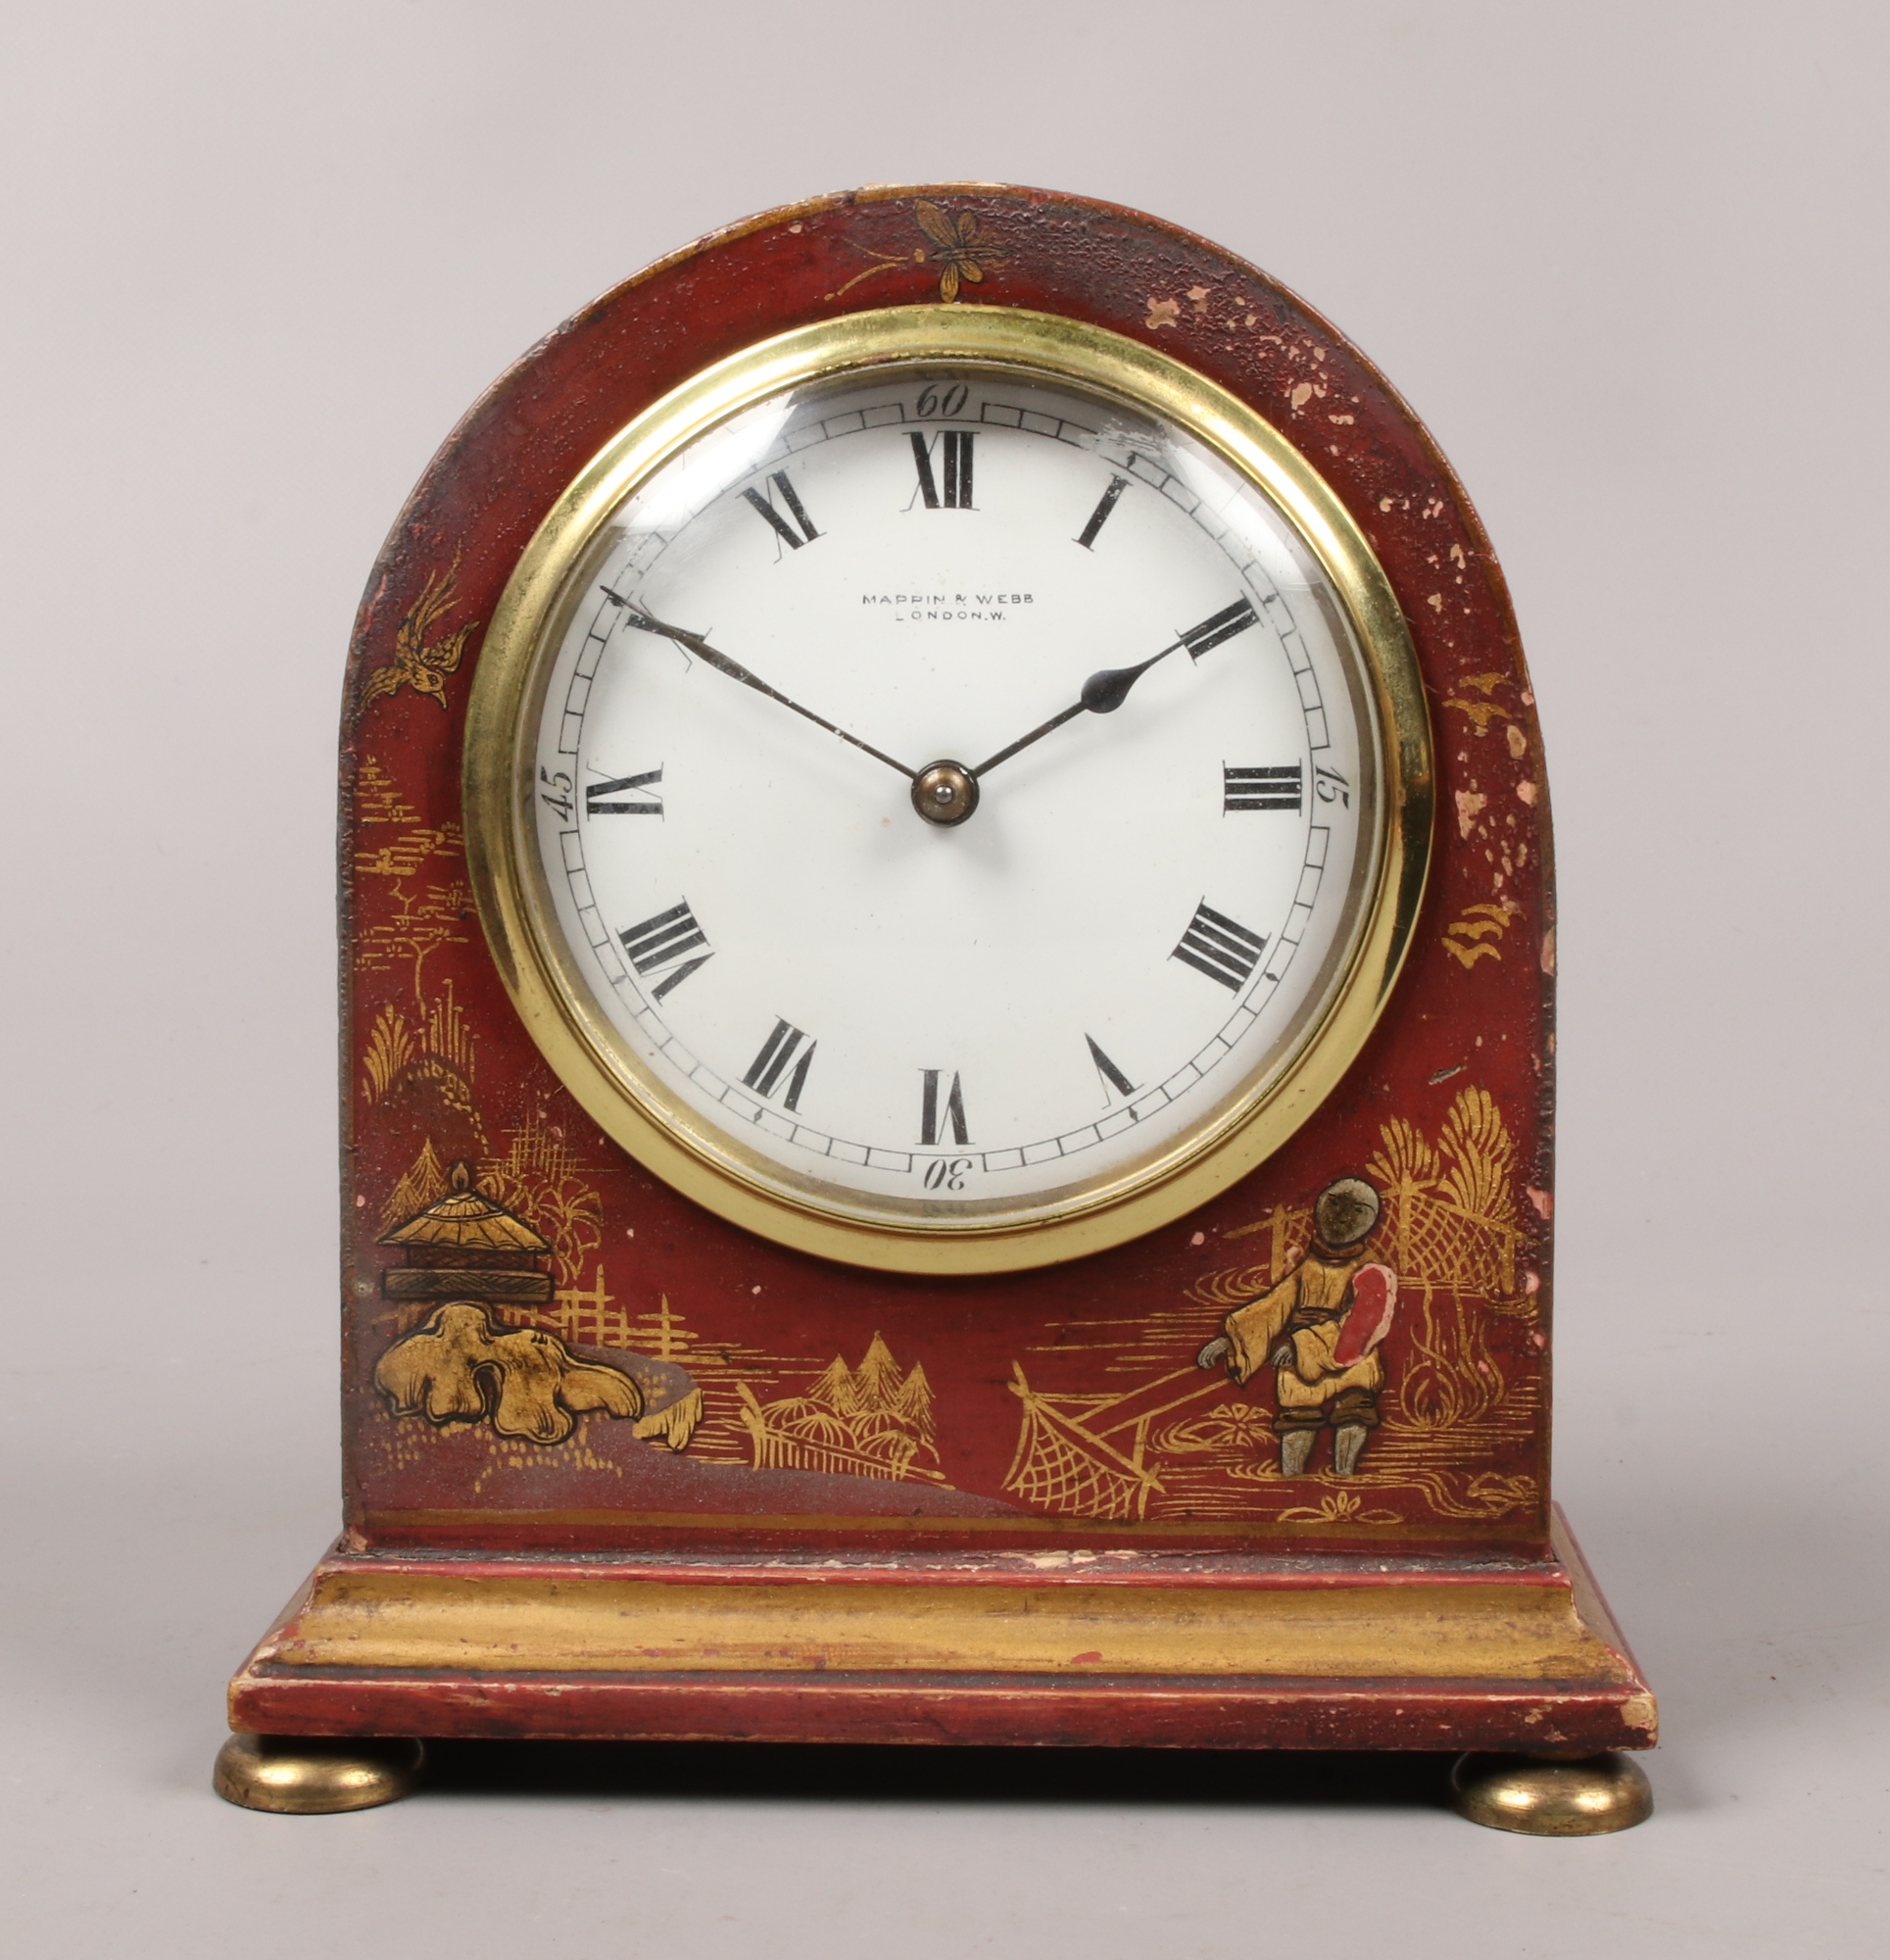 Lot 13 - An early 20th century chinoiserie 8 day mantle clock by Mappin & Webb the case decorated red and